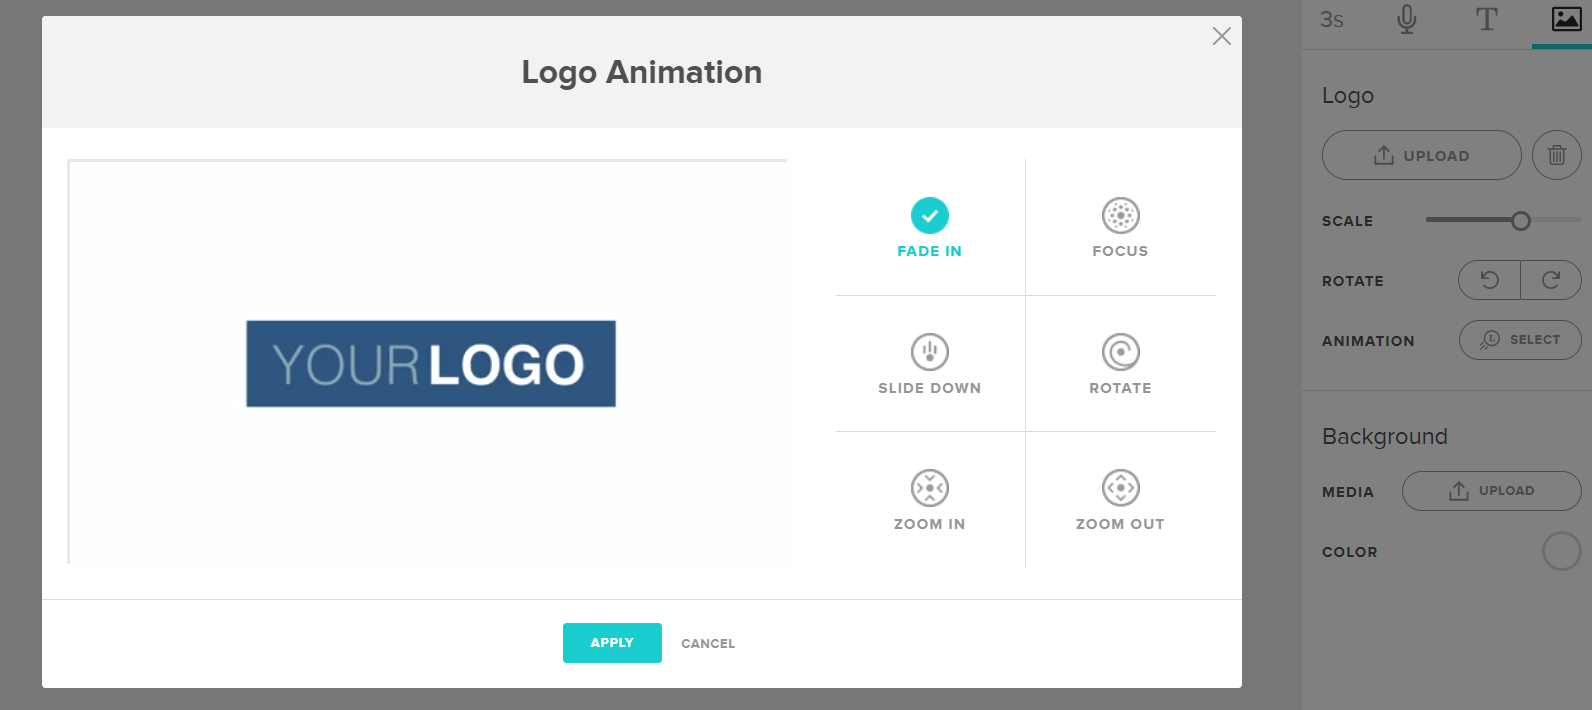 Logo animation is an option under Animoto's editing tools